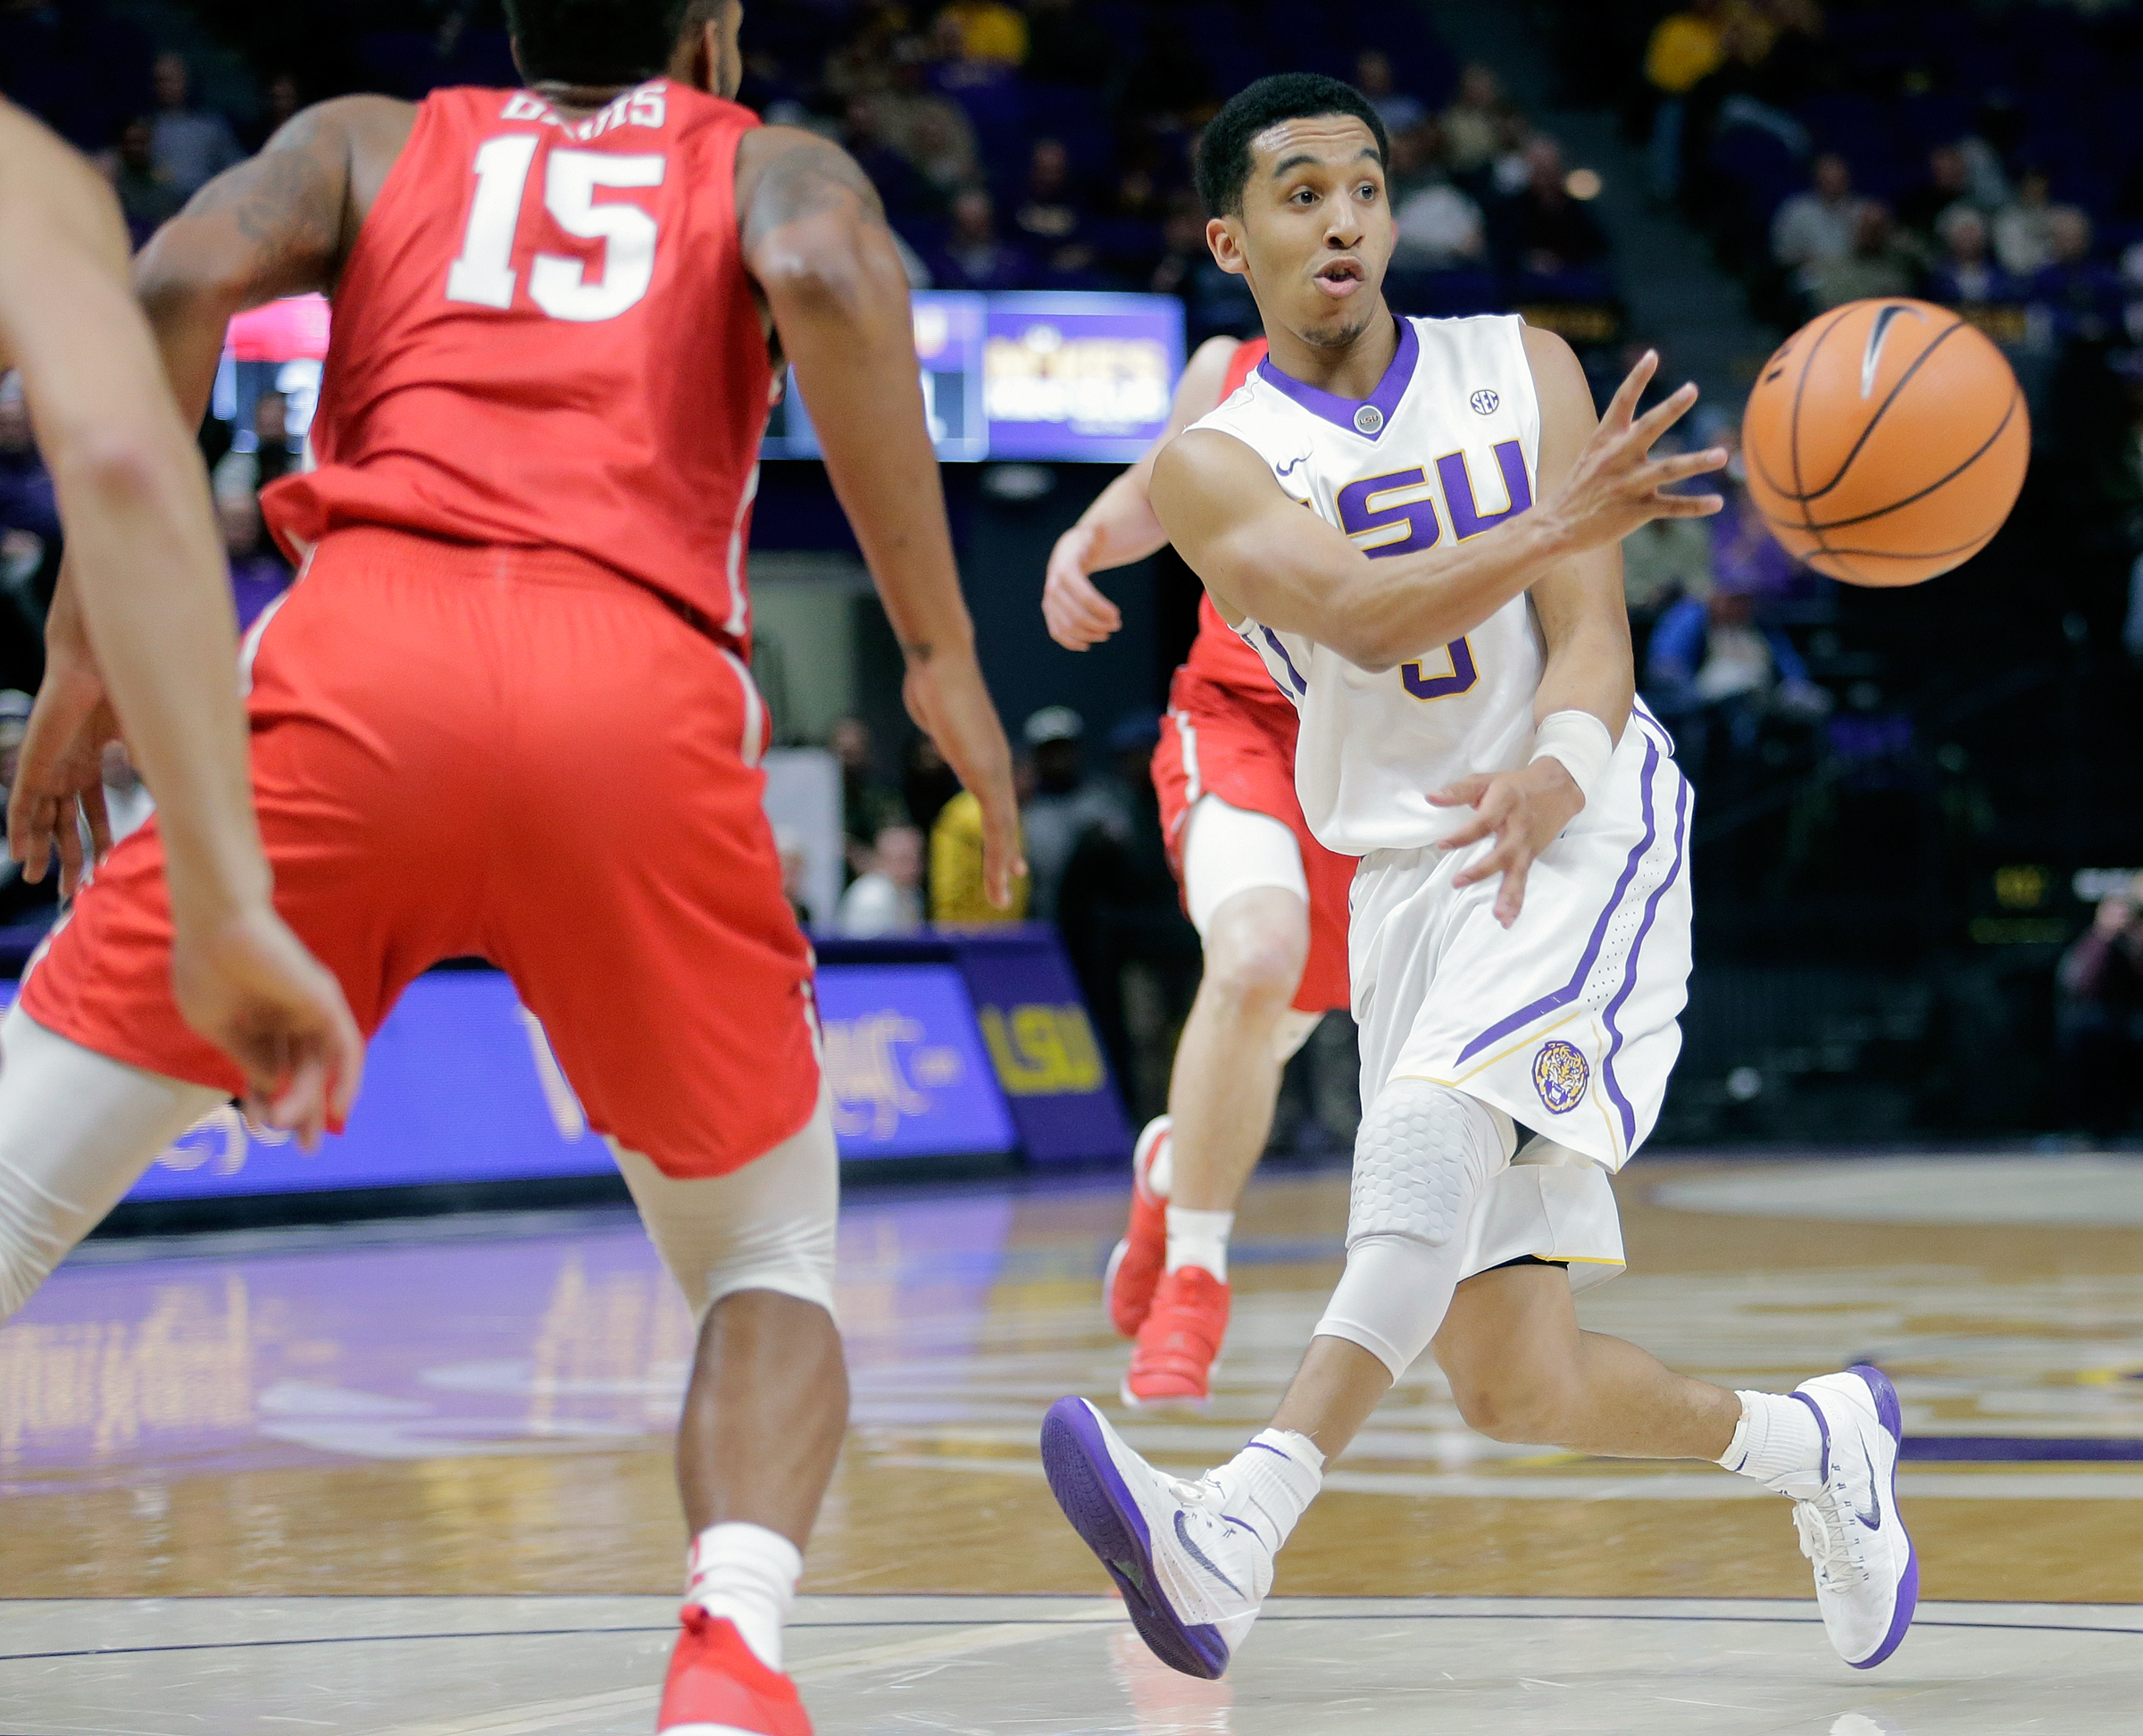 LSU Tigers guard Tremont Waters (3) passes the ball during first half action against the Houston Cougars at the Pete Maravich Assembly Center in Baton Rouge on Wednesday, December 13, 2017. (Brett Duke, NOLA.com | The Times-Picayune)